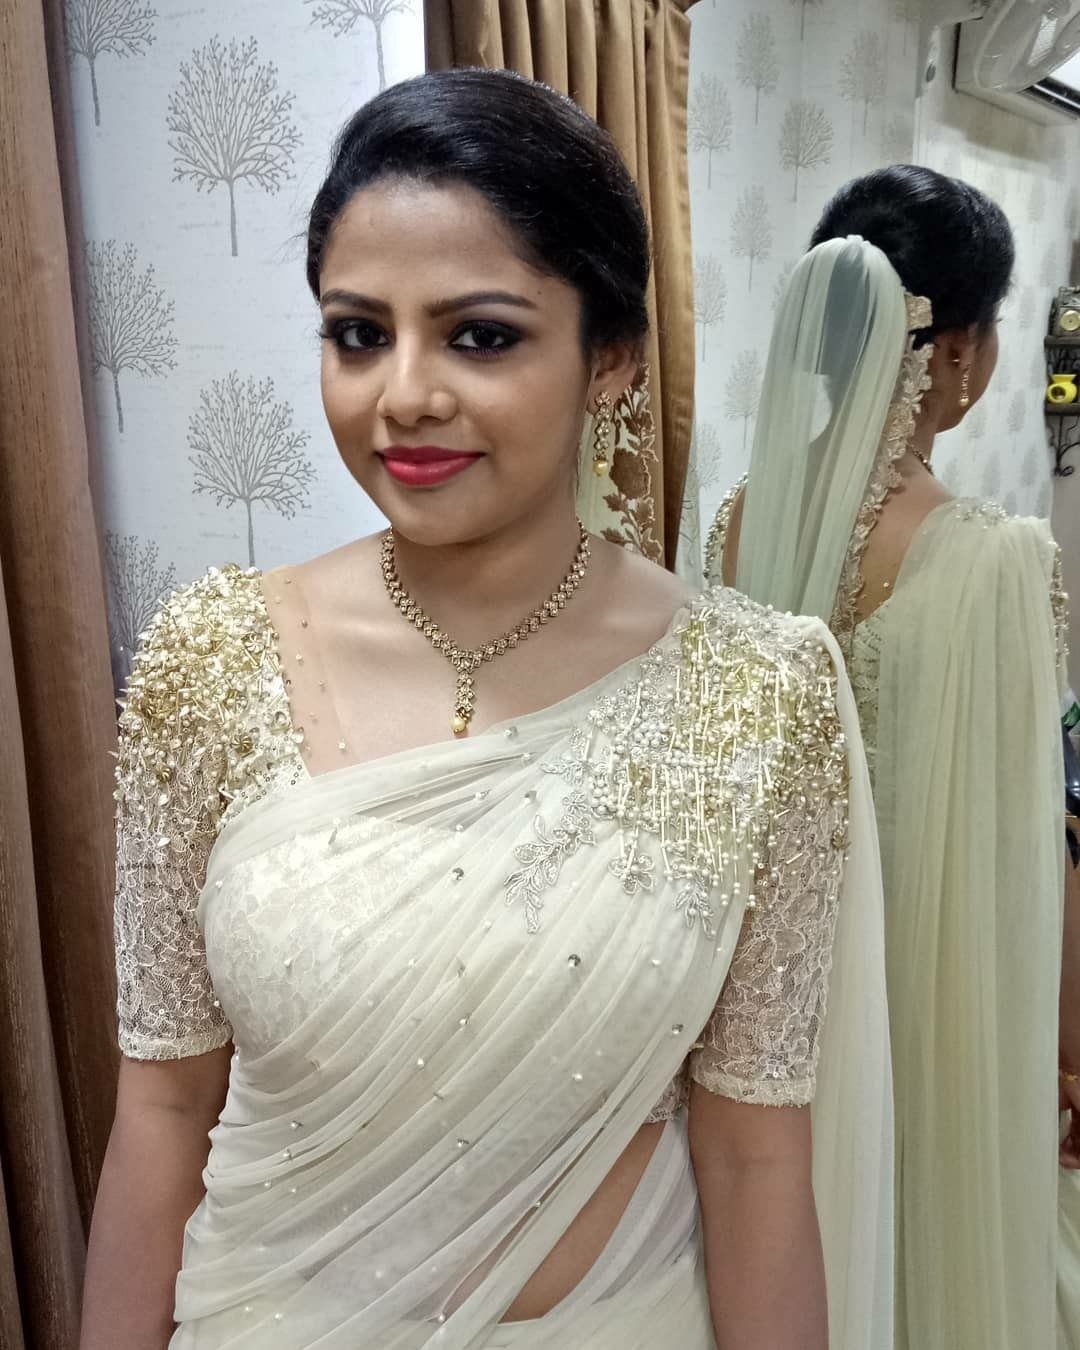 Christian Wedding White Gown: Pin By Reshma Santhosh On Fashion In 2019